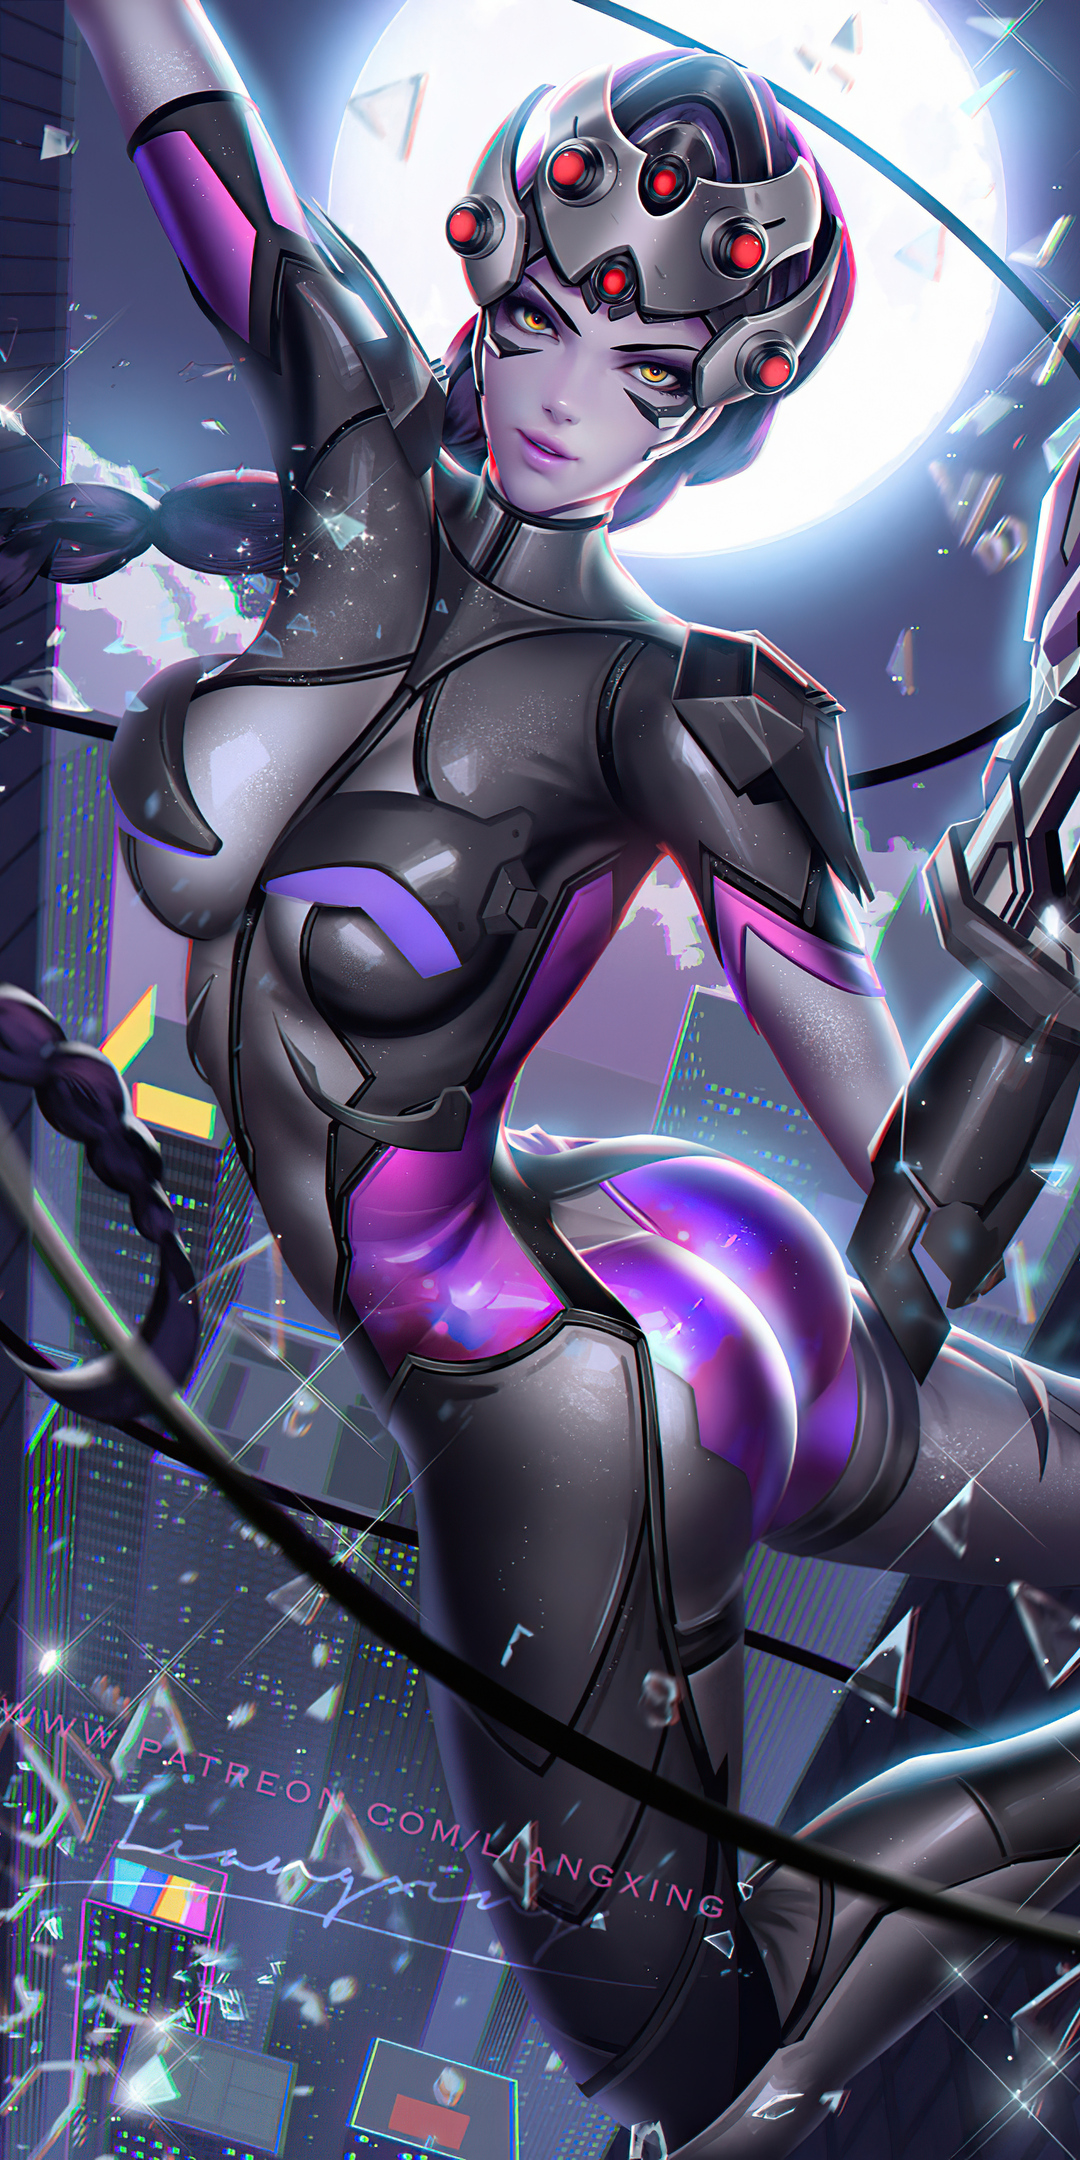 widowmaker-fanatasy-game-art-4k-ss.jpg